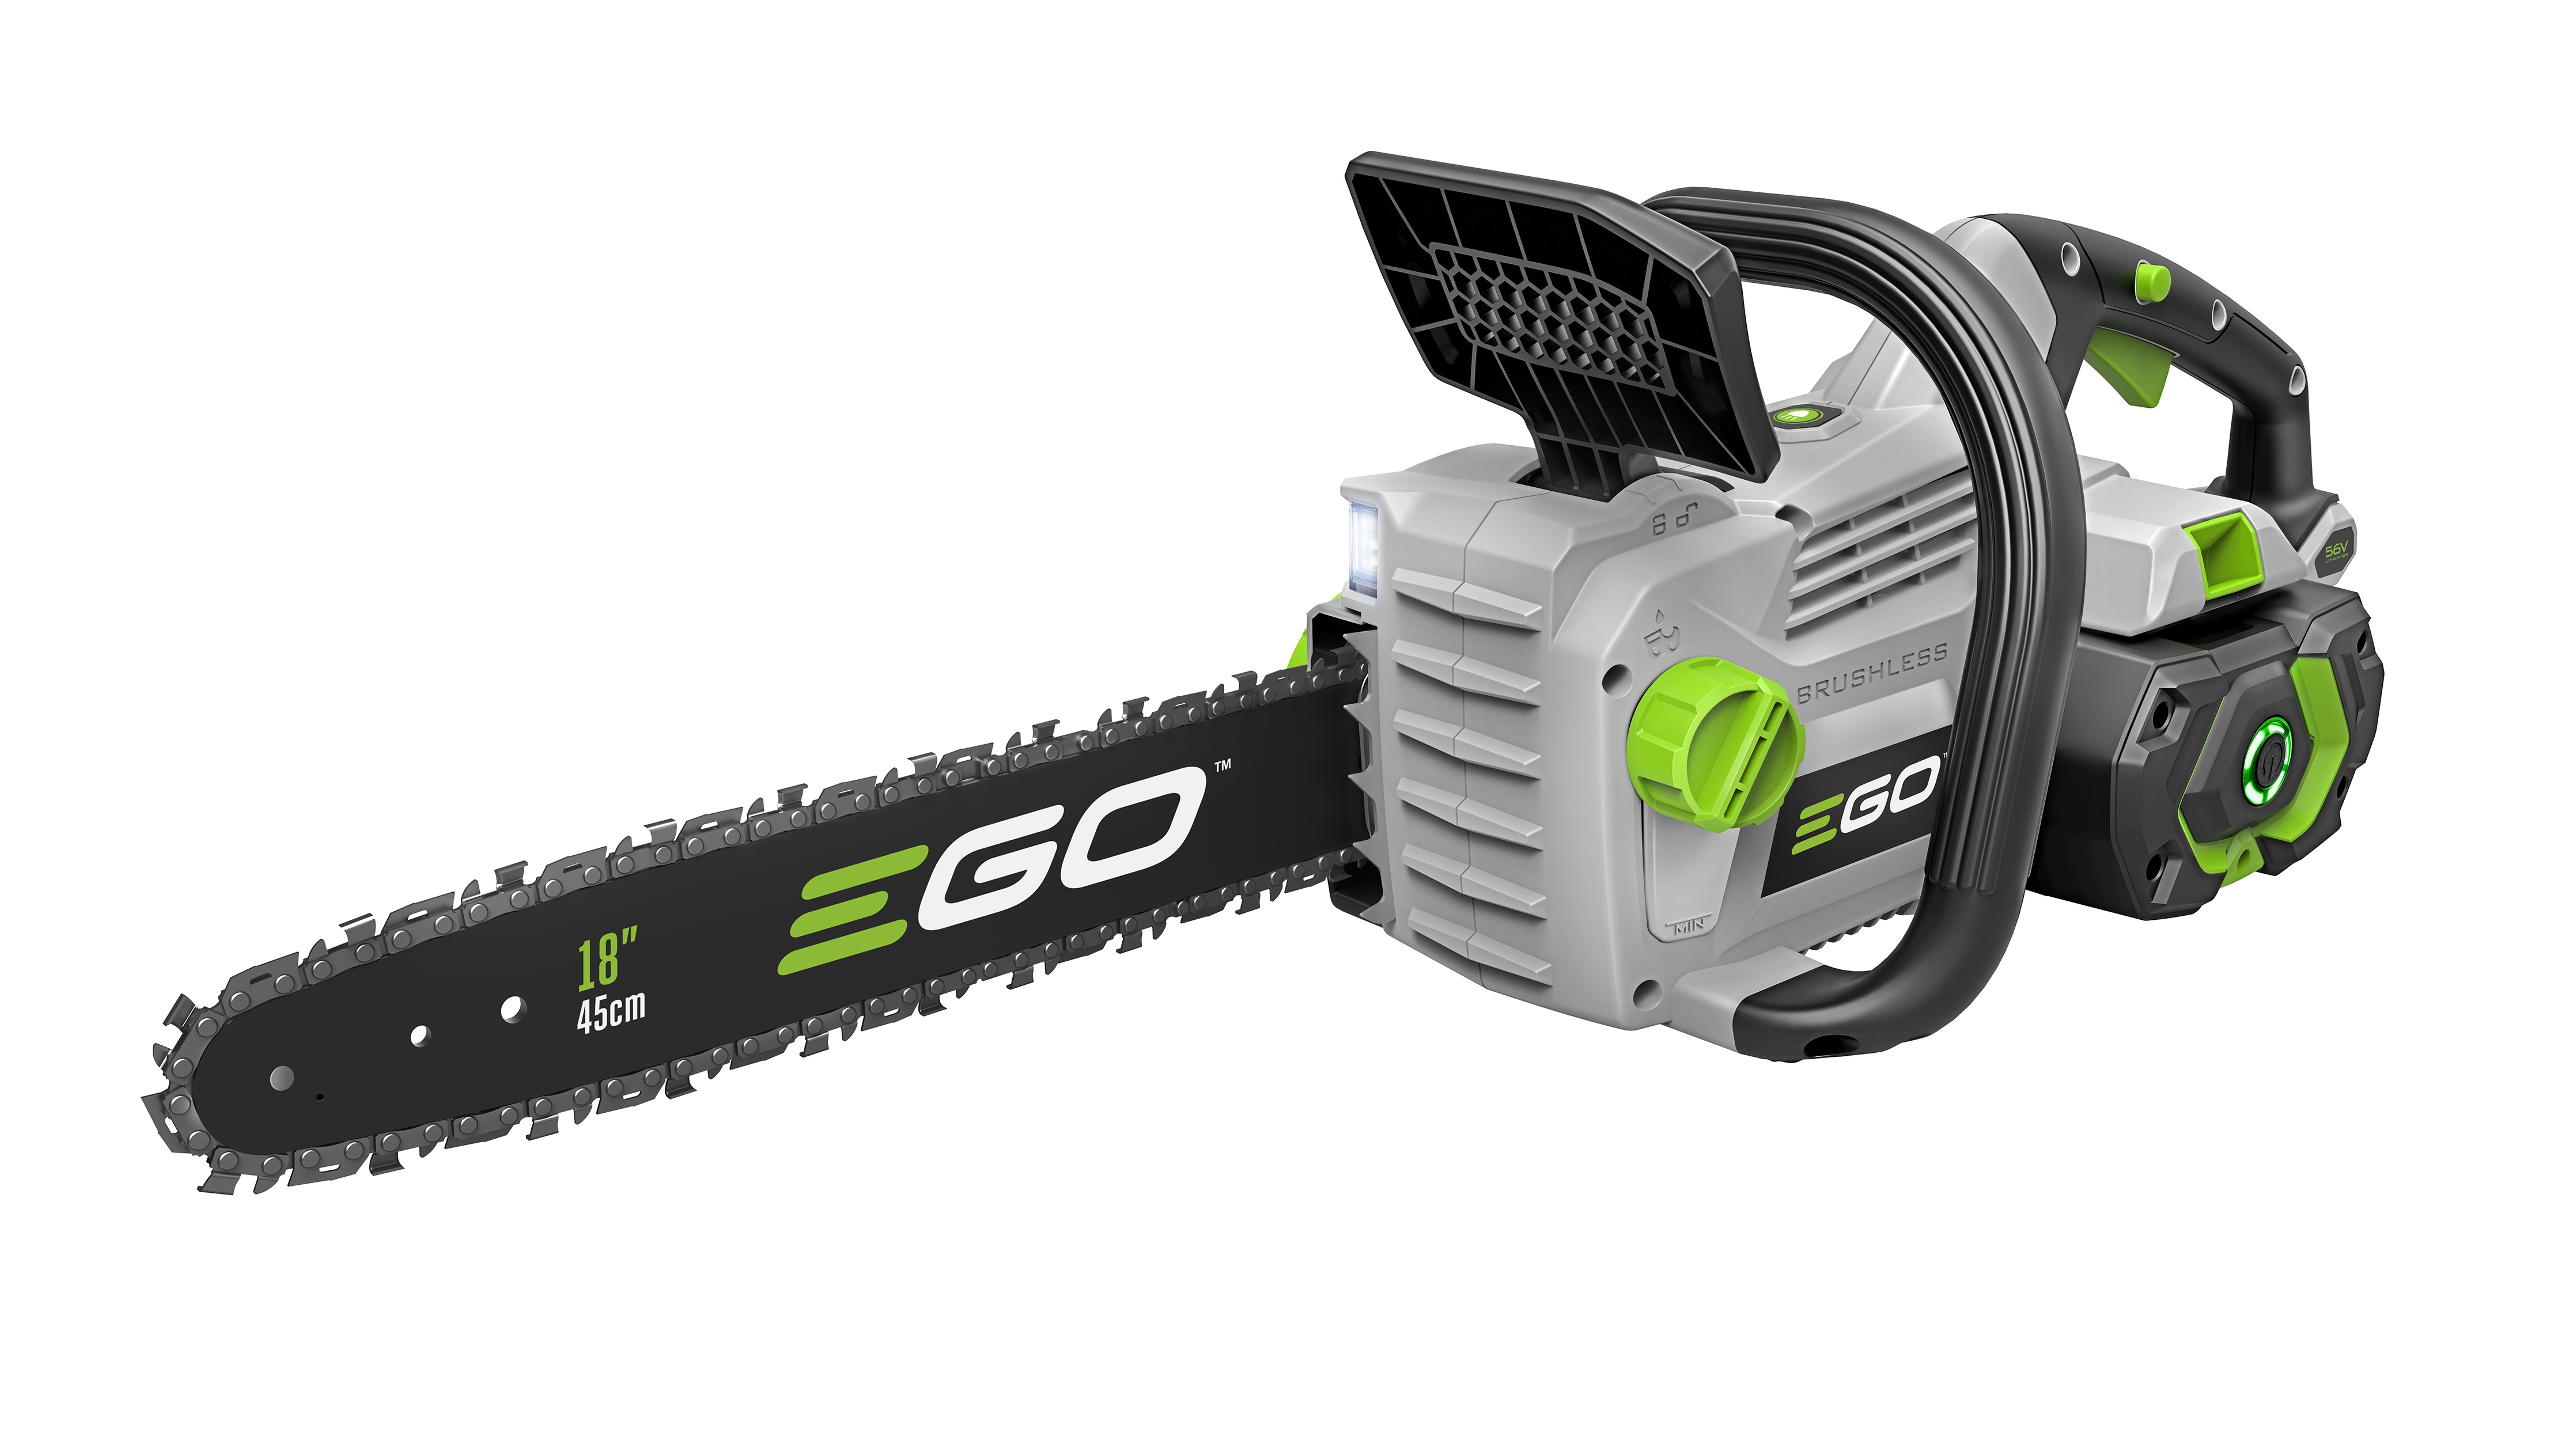 Ego Power+ 18 in. Chain Saw